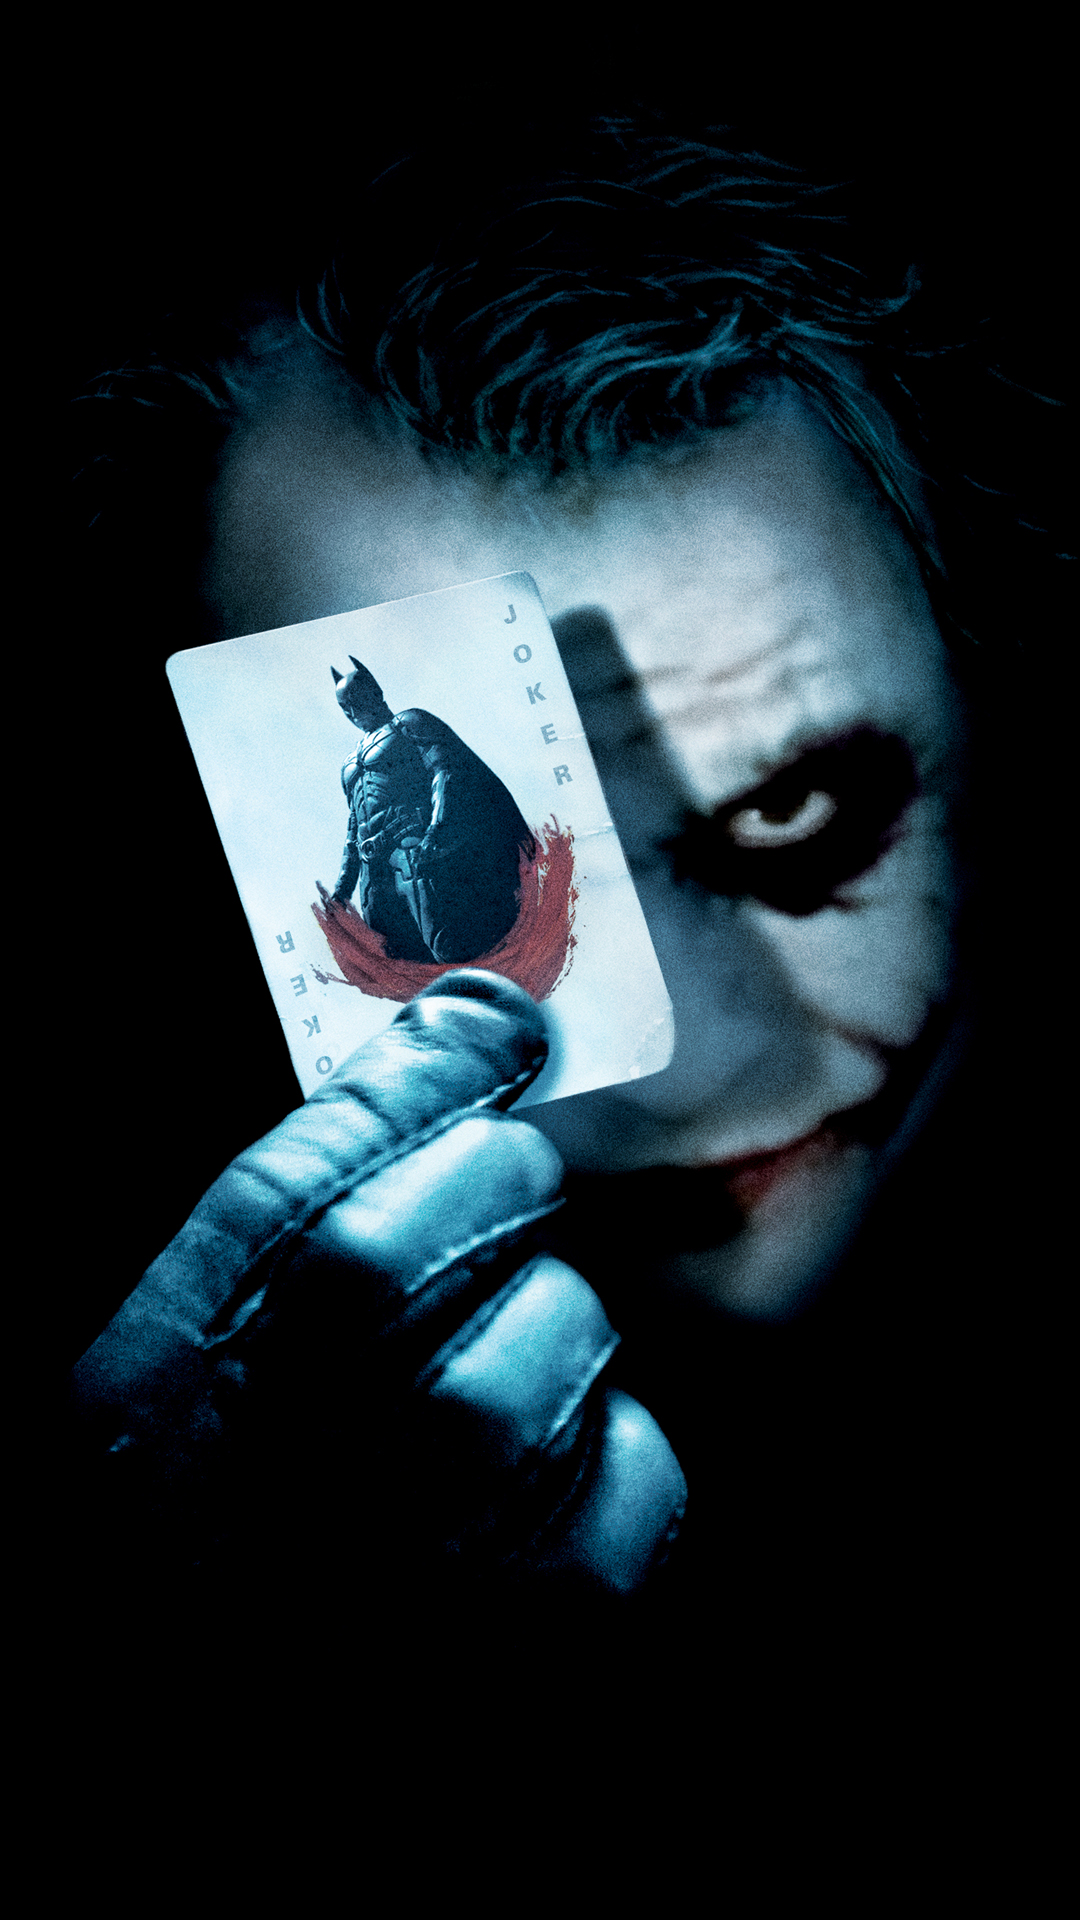 Joker - Best htc one wallpapers, free and easy to download